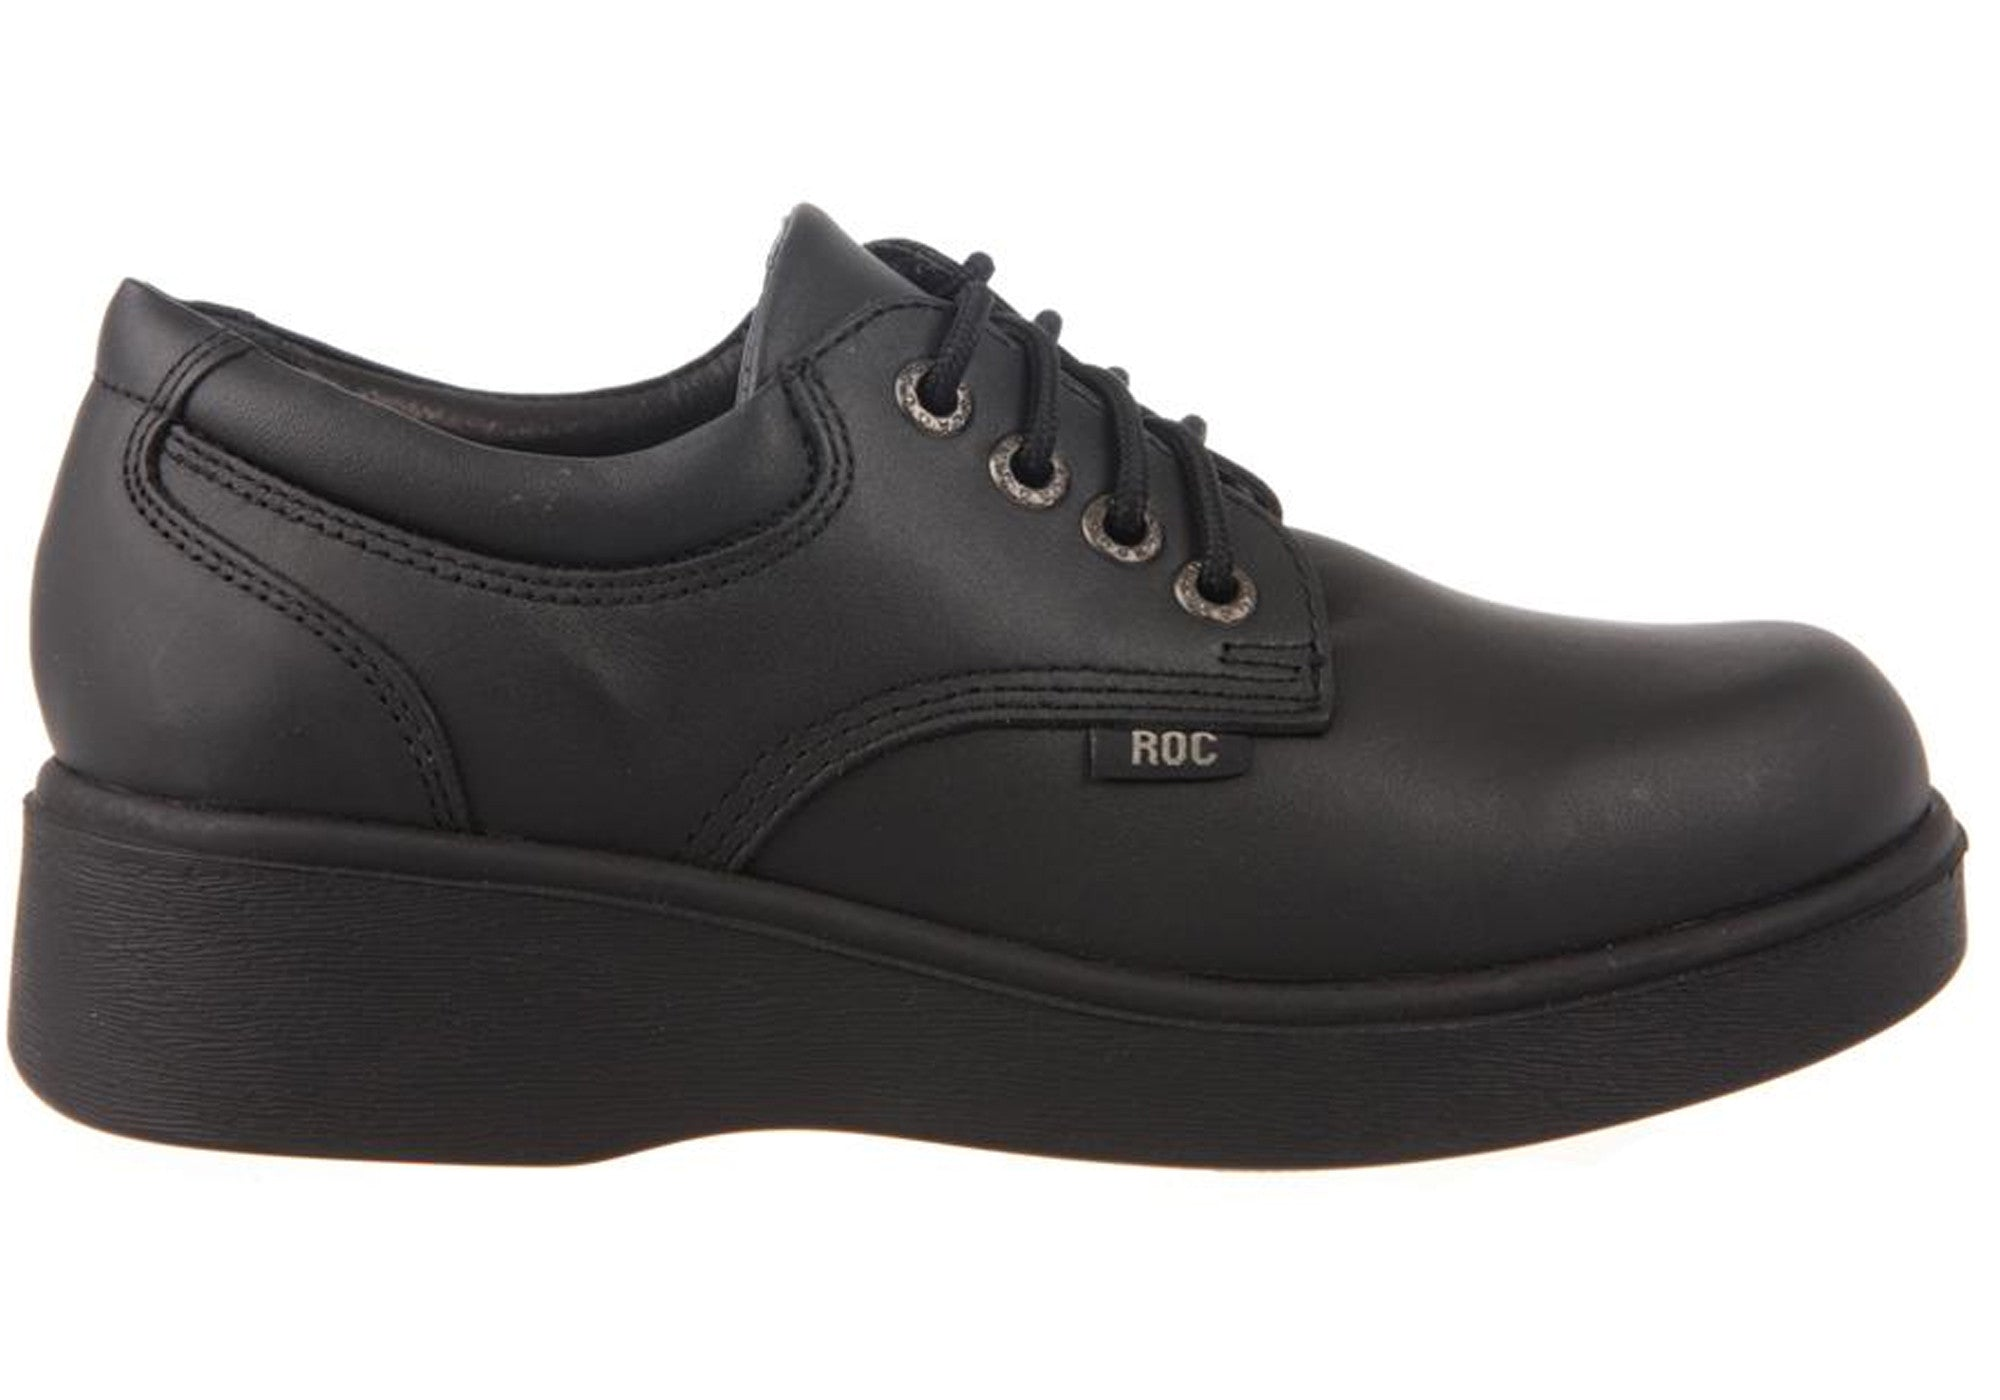 Roc Scary Womens/Older Girls School Shoes